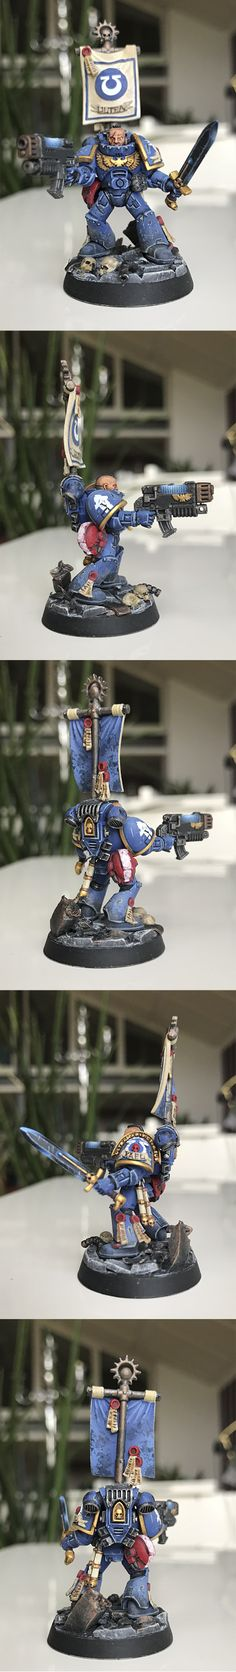 Sergeant of the Ultramarines